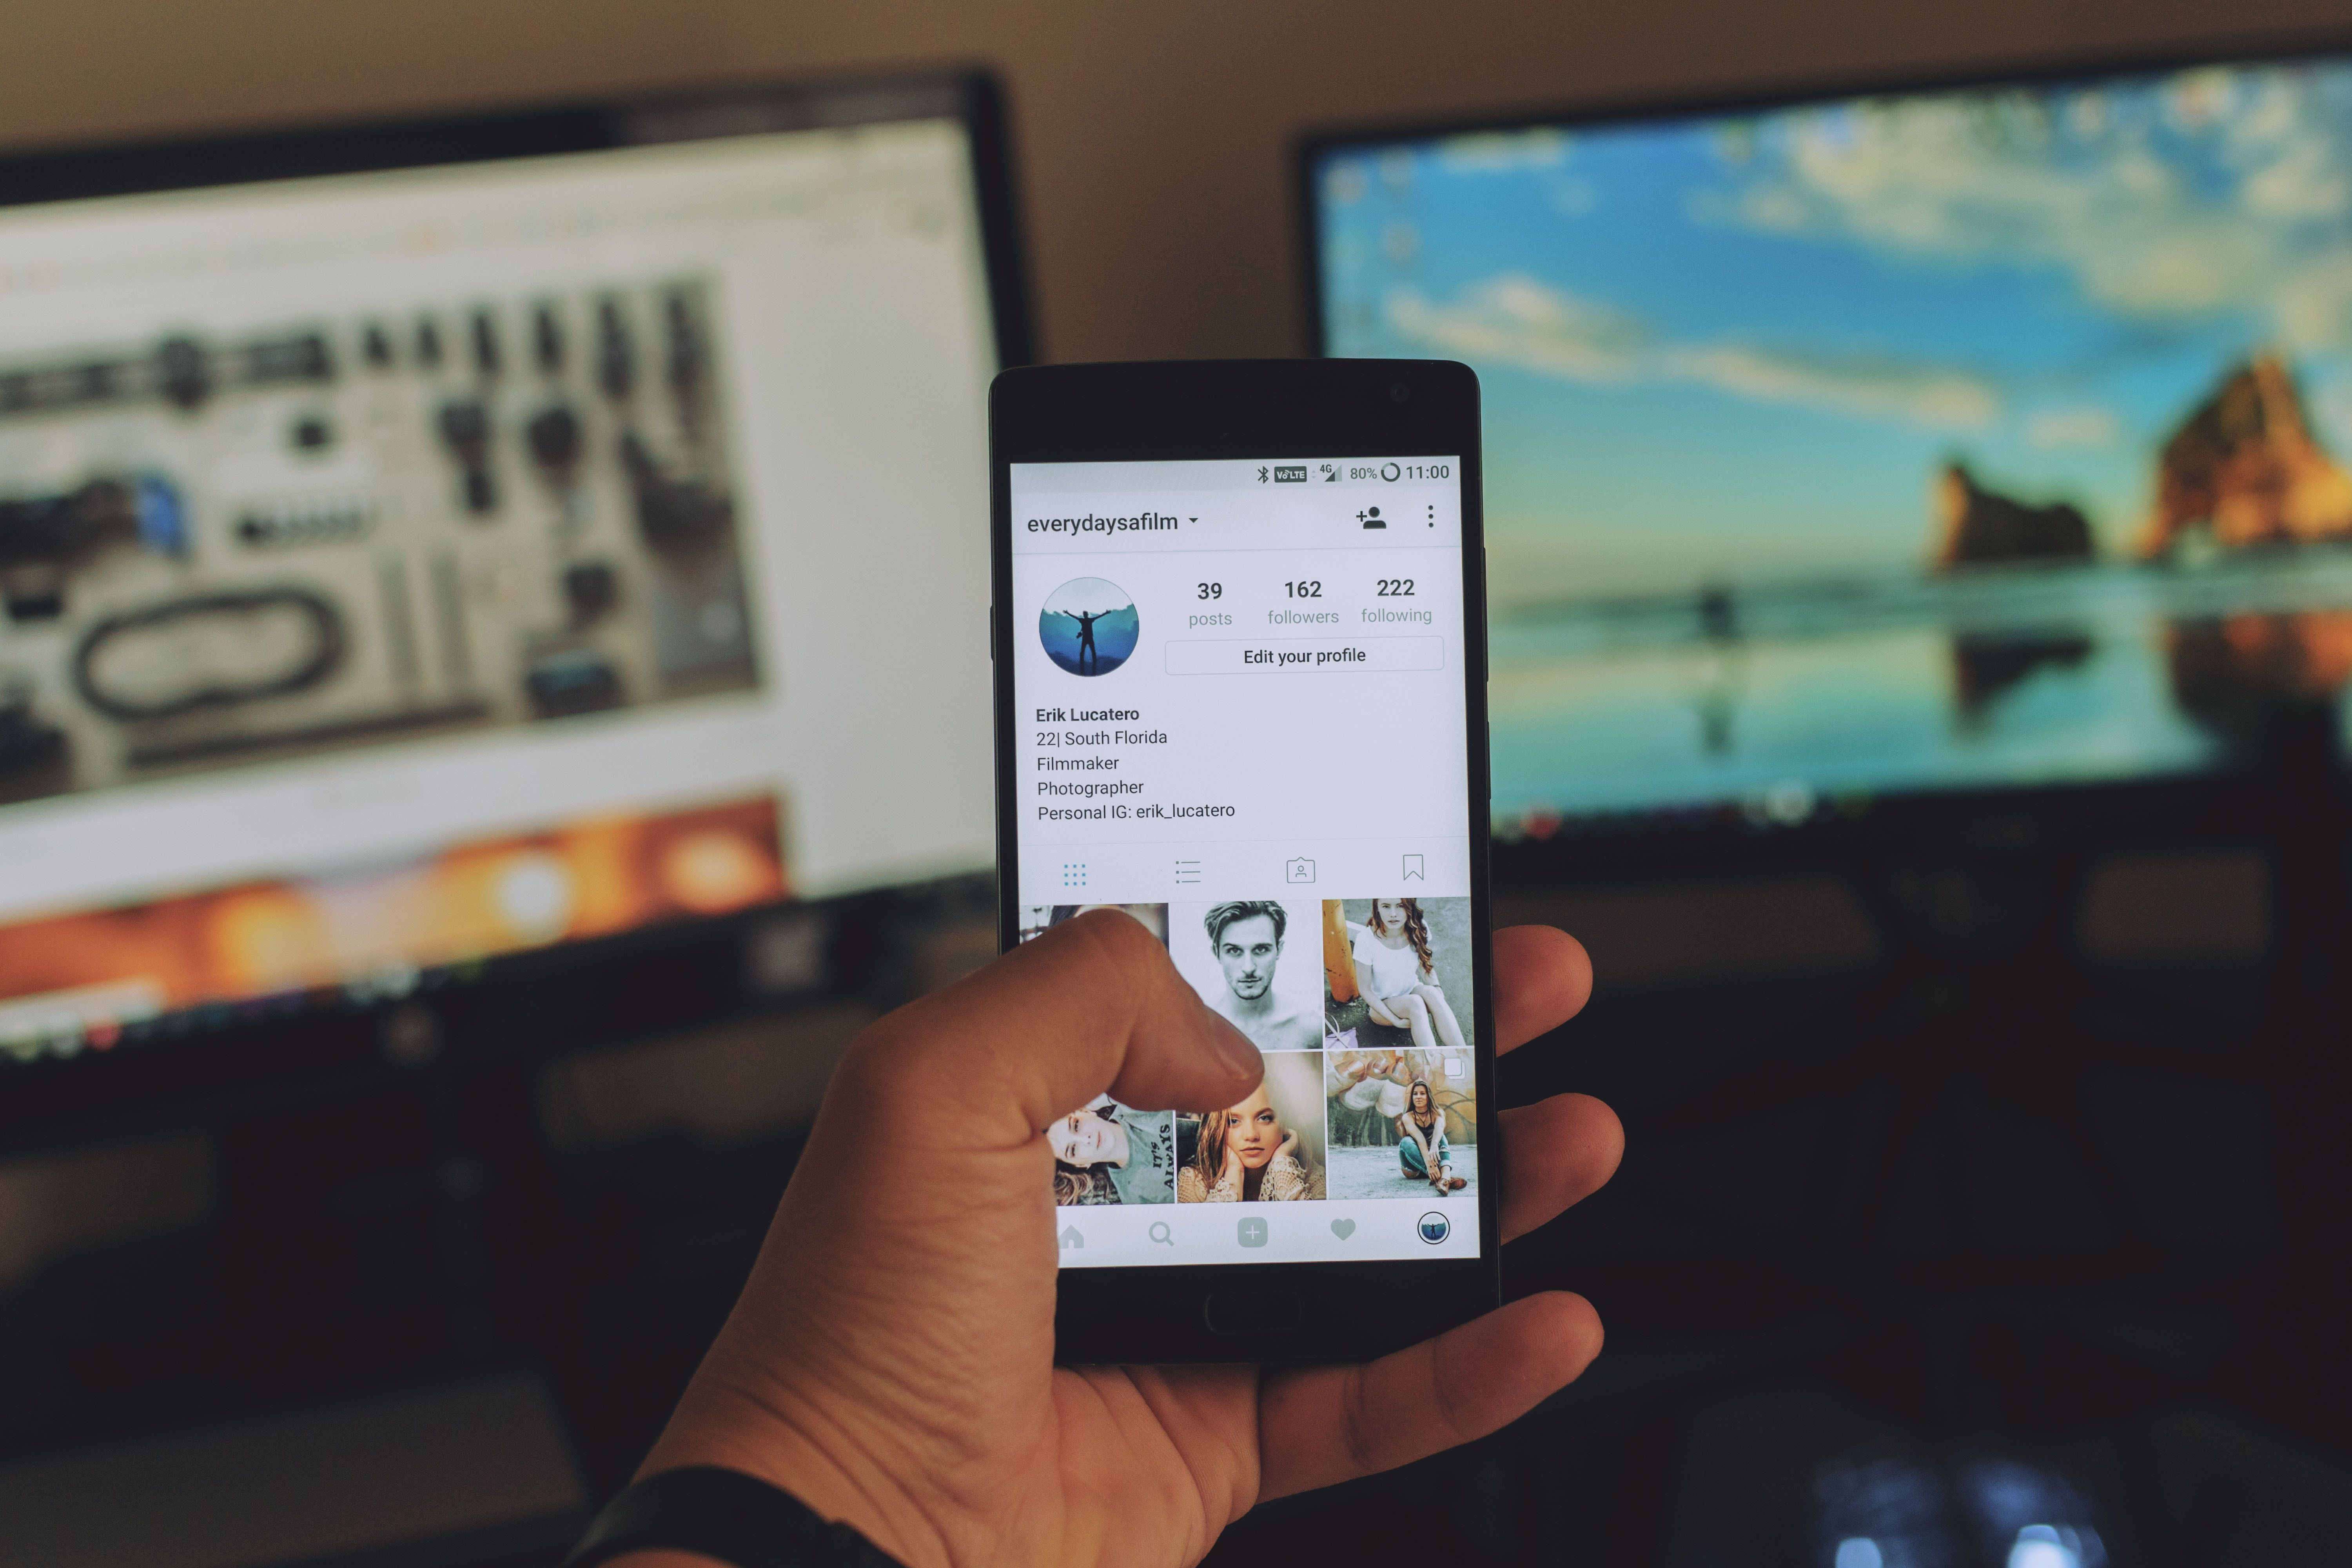 A picture of someone holding up a smartphone showing an Instagram profile.